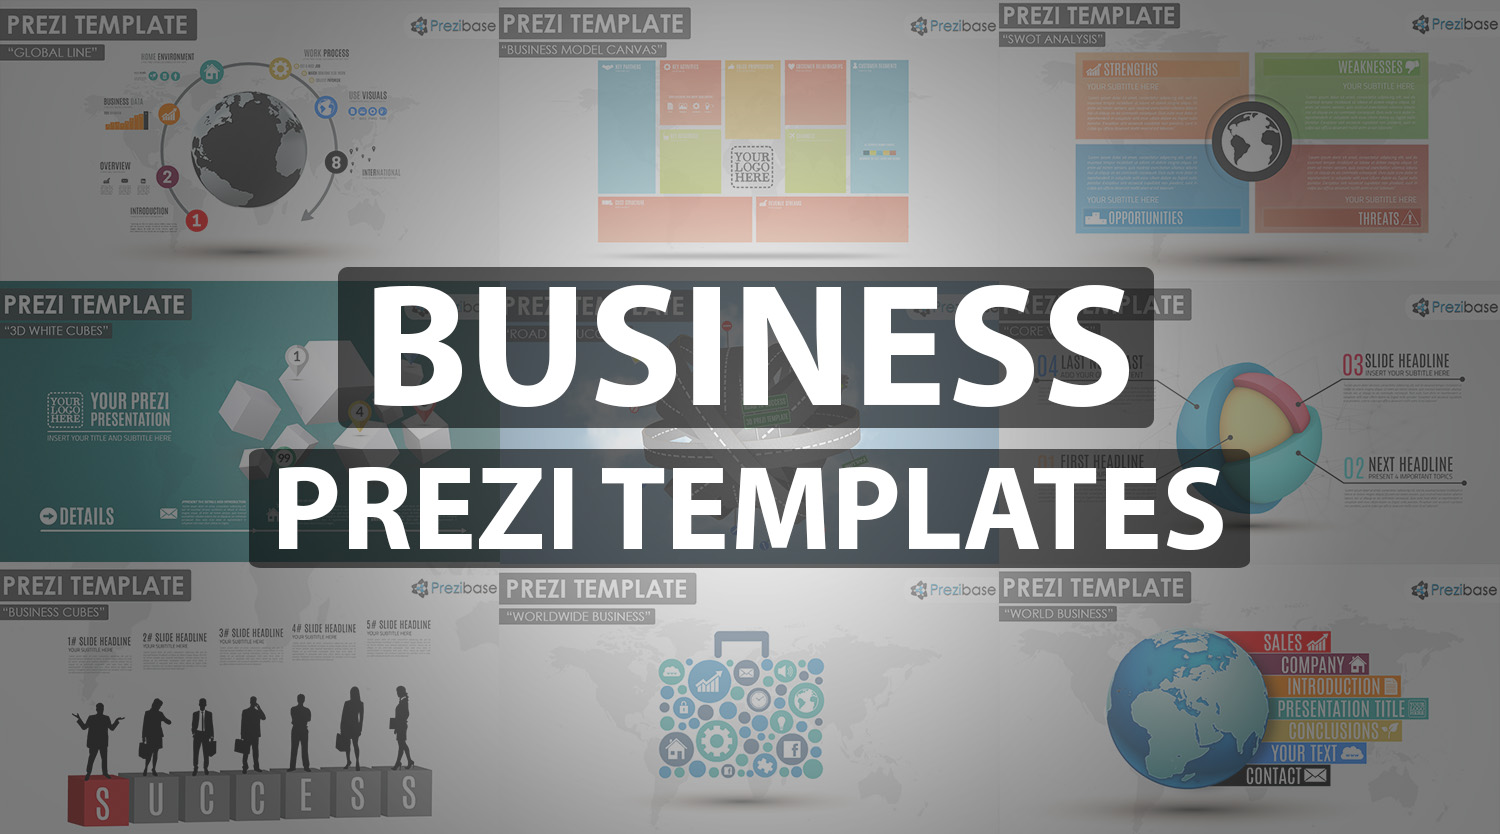 Business Prezi Templates Prezibase - Professional templates